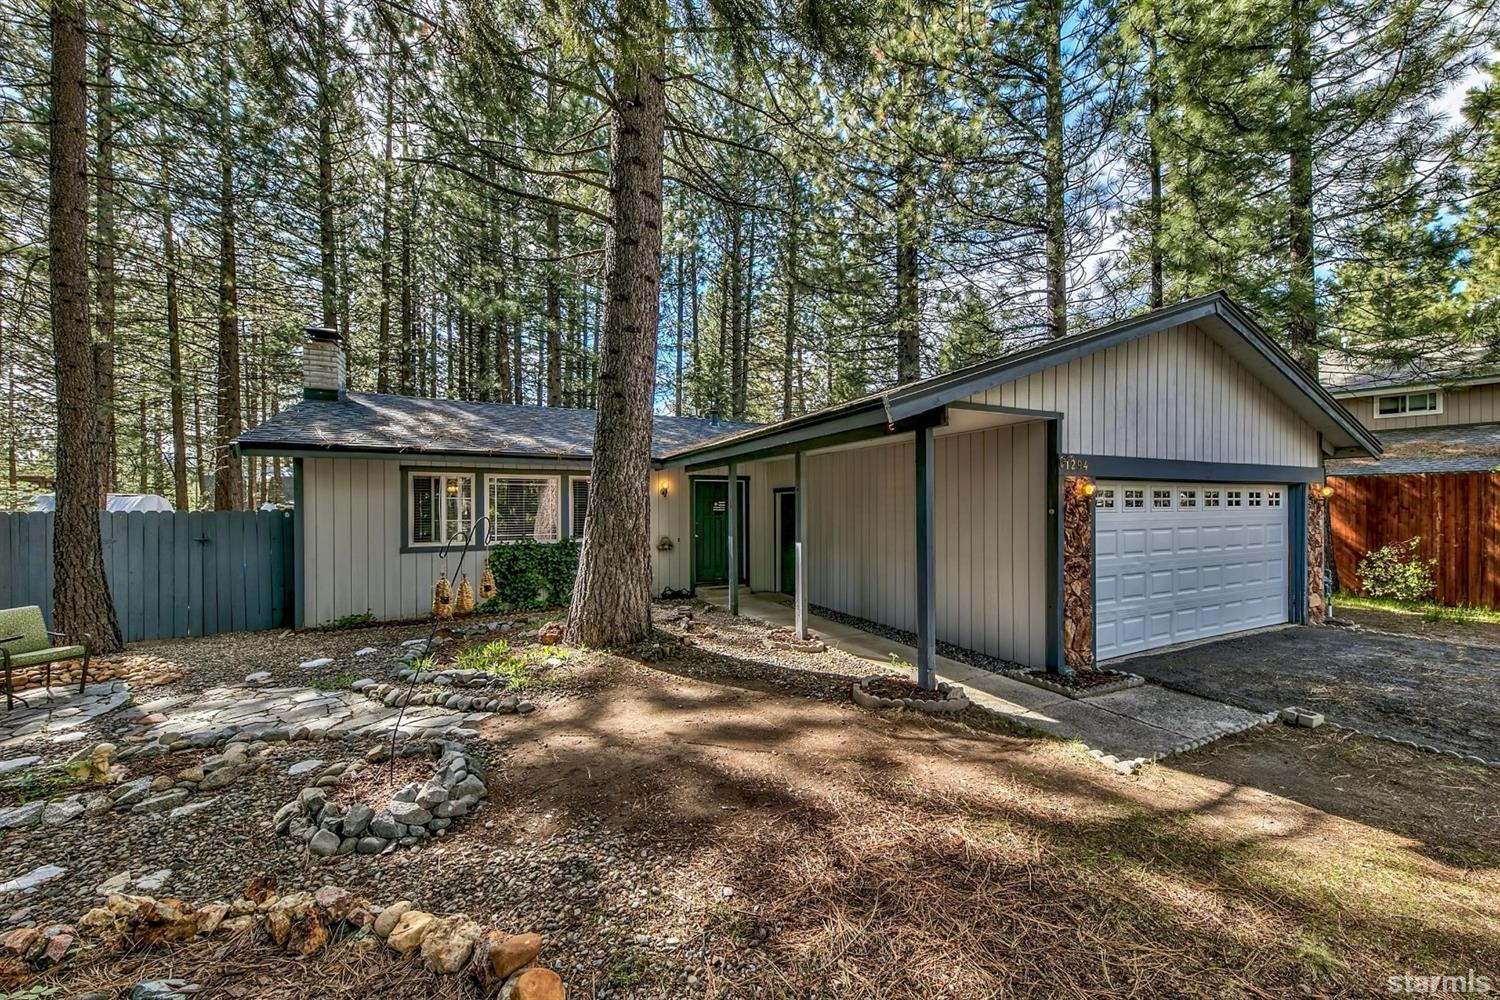 1121 Julie Lane, South Lake Tahoe, California